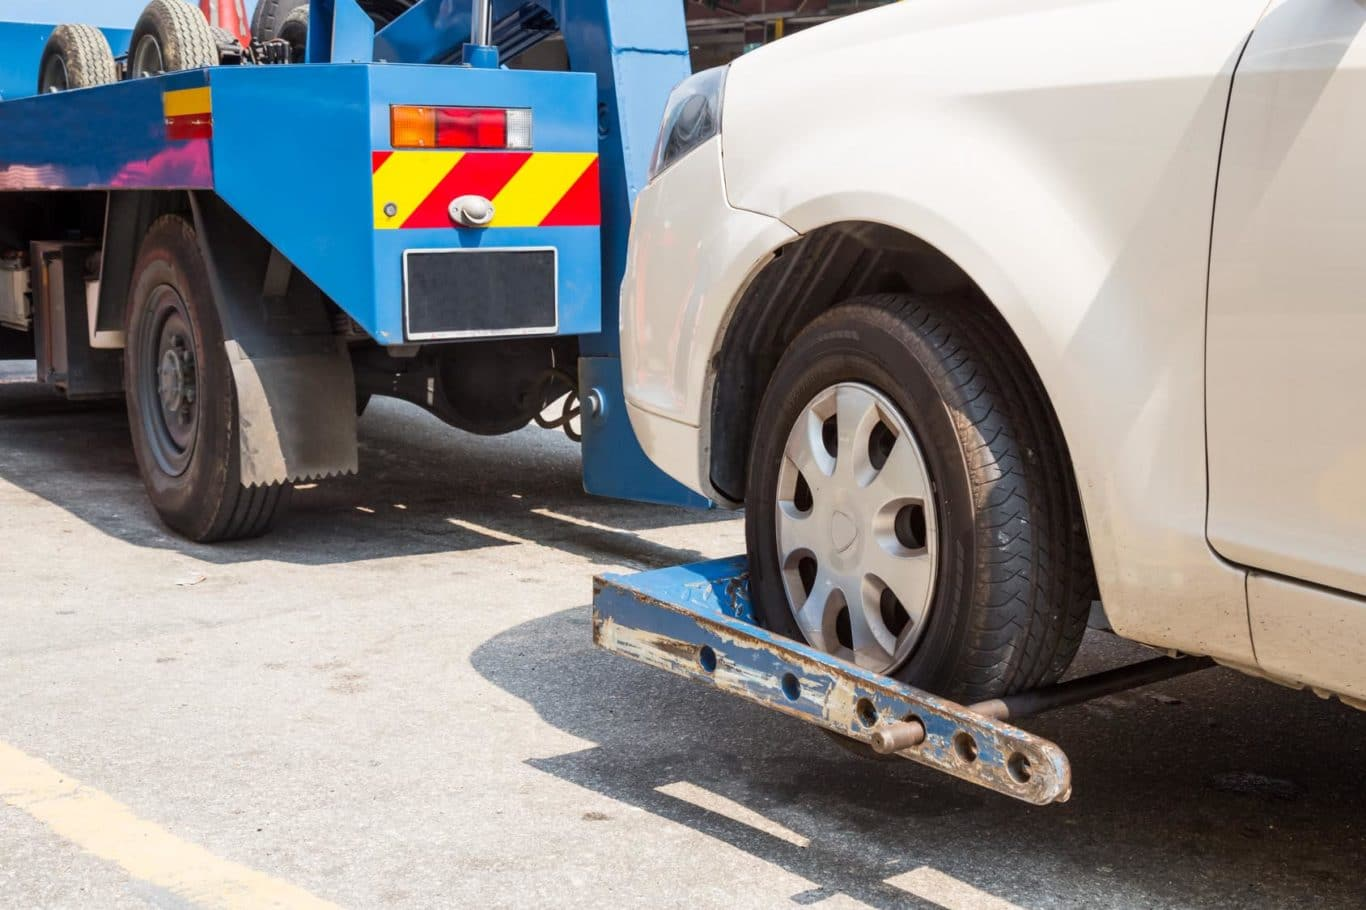 Roundwood expert Roadside Assistance services